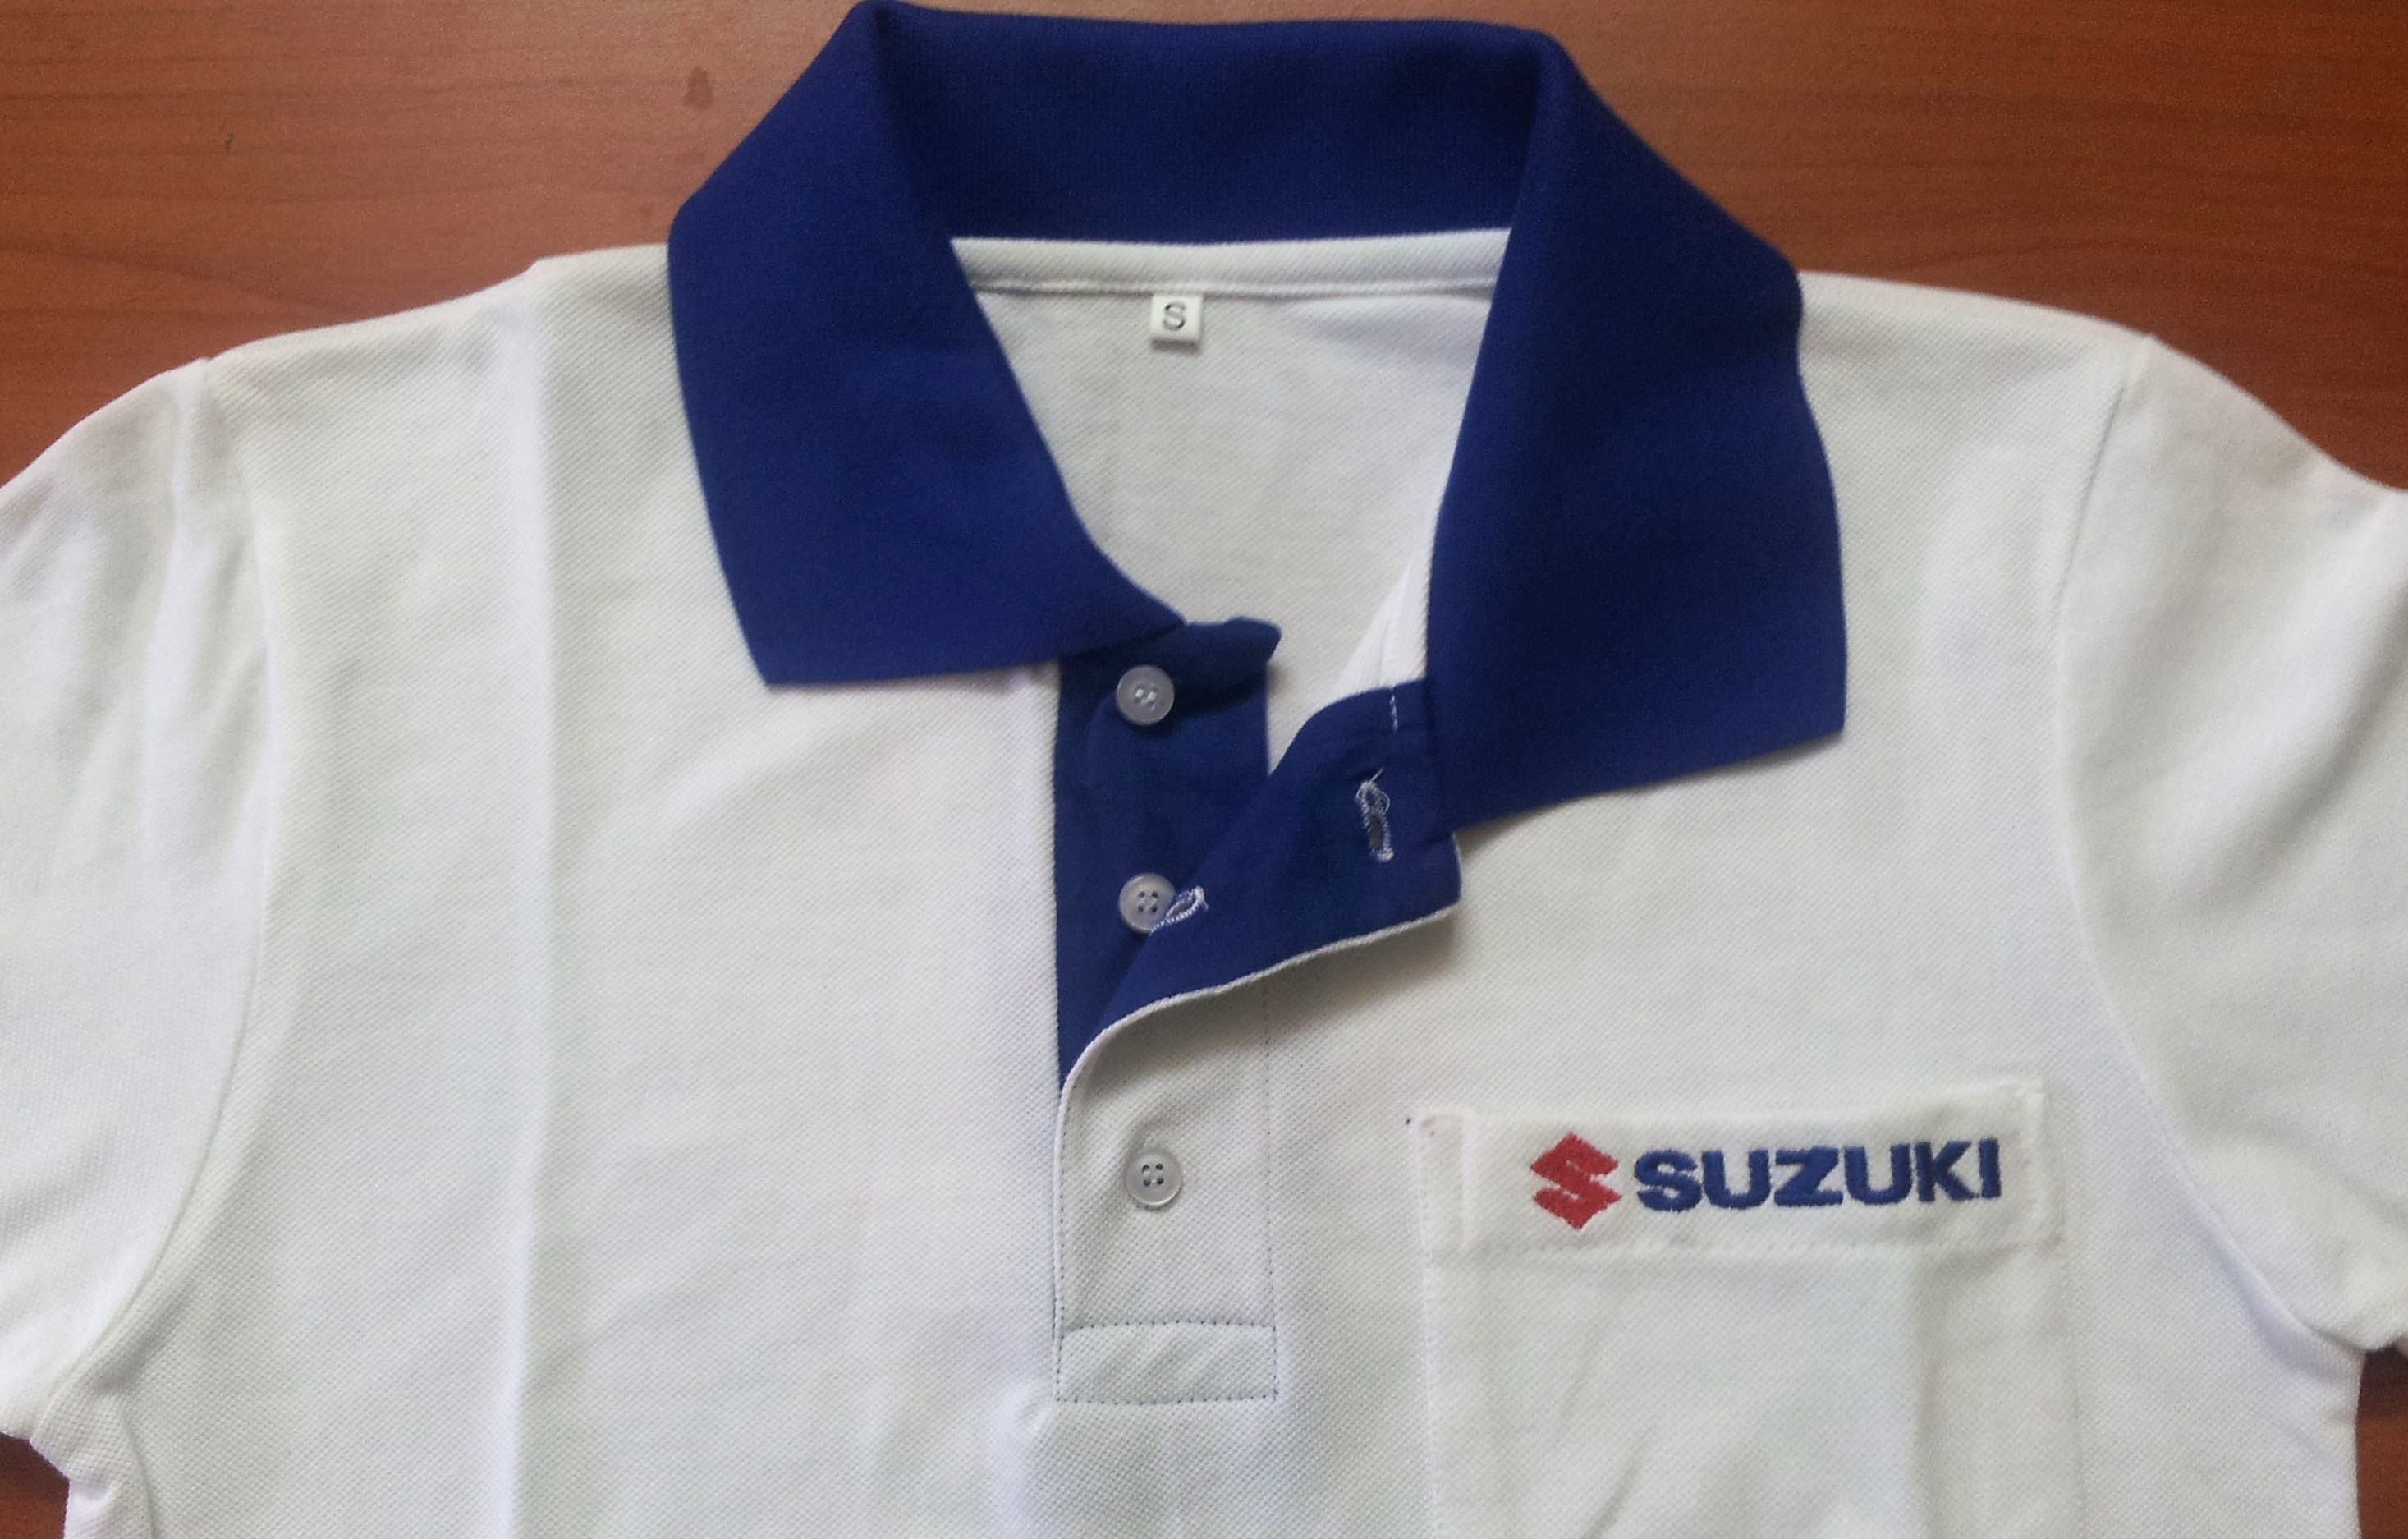 corporate custom t-shirt